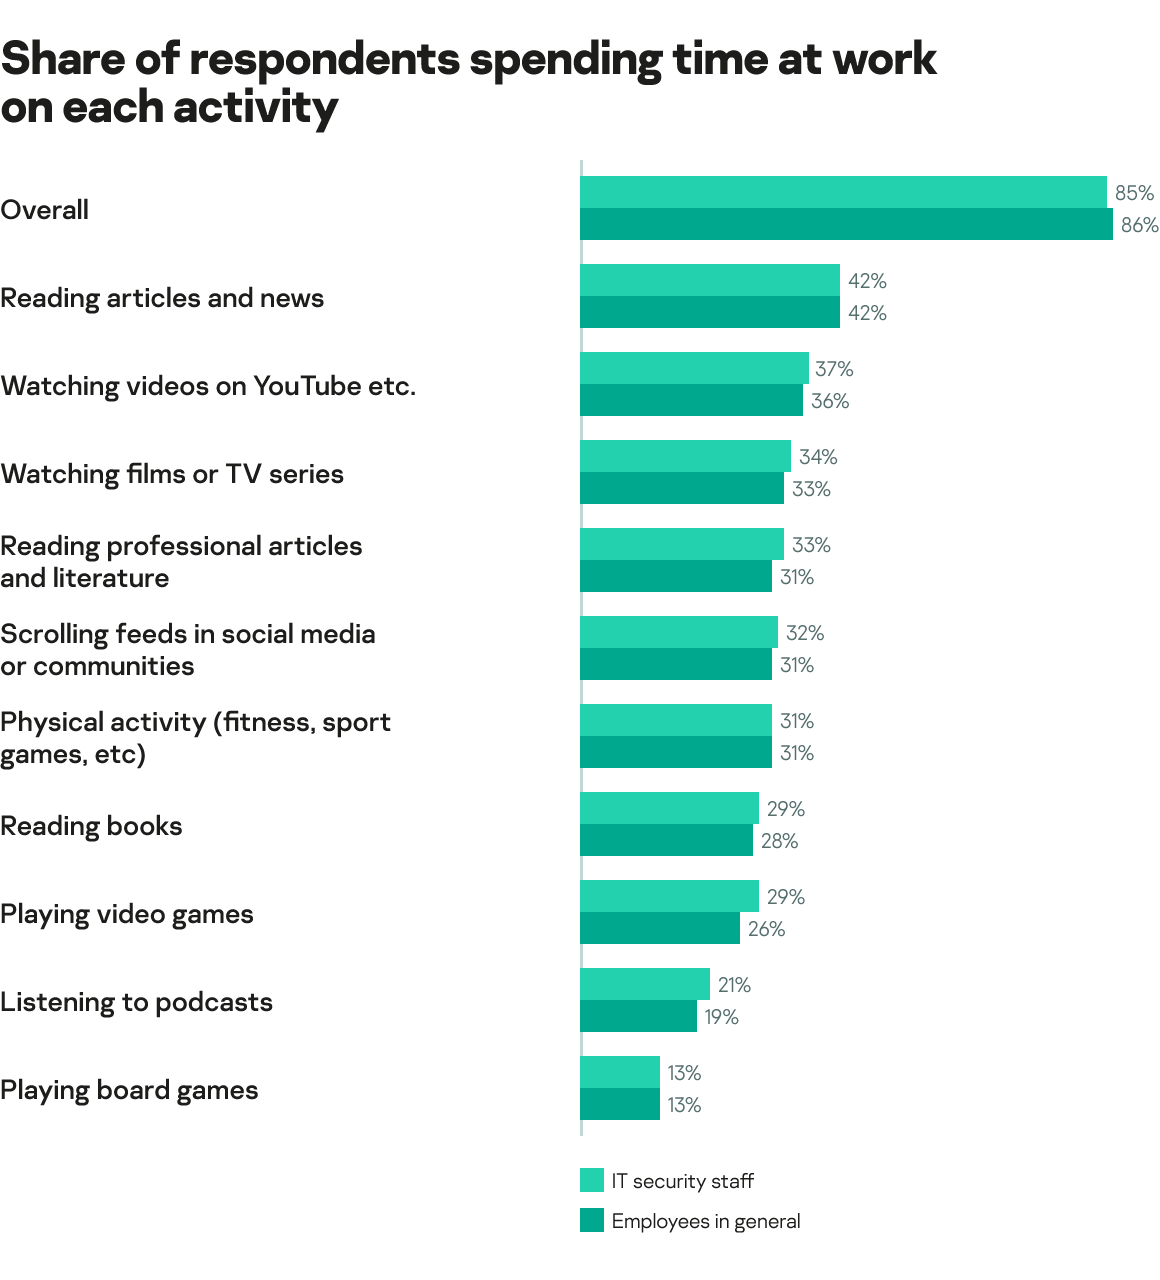 Share of respondents spending time at work on each activity